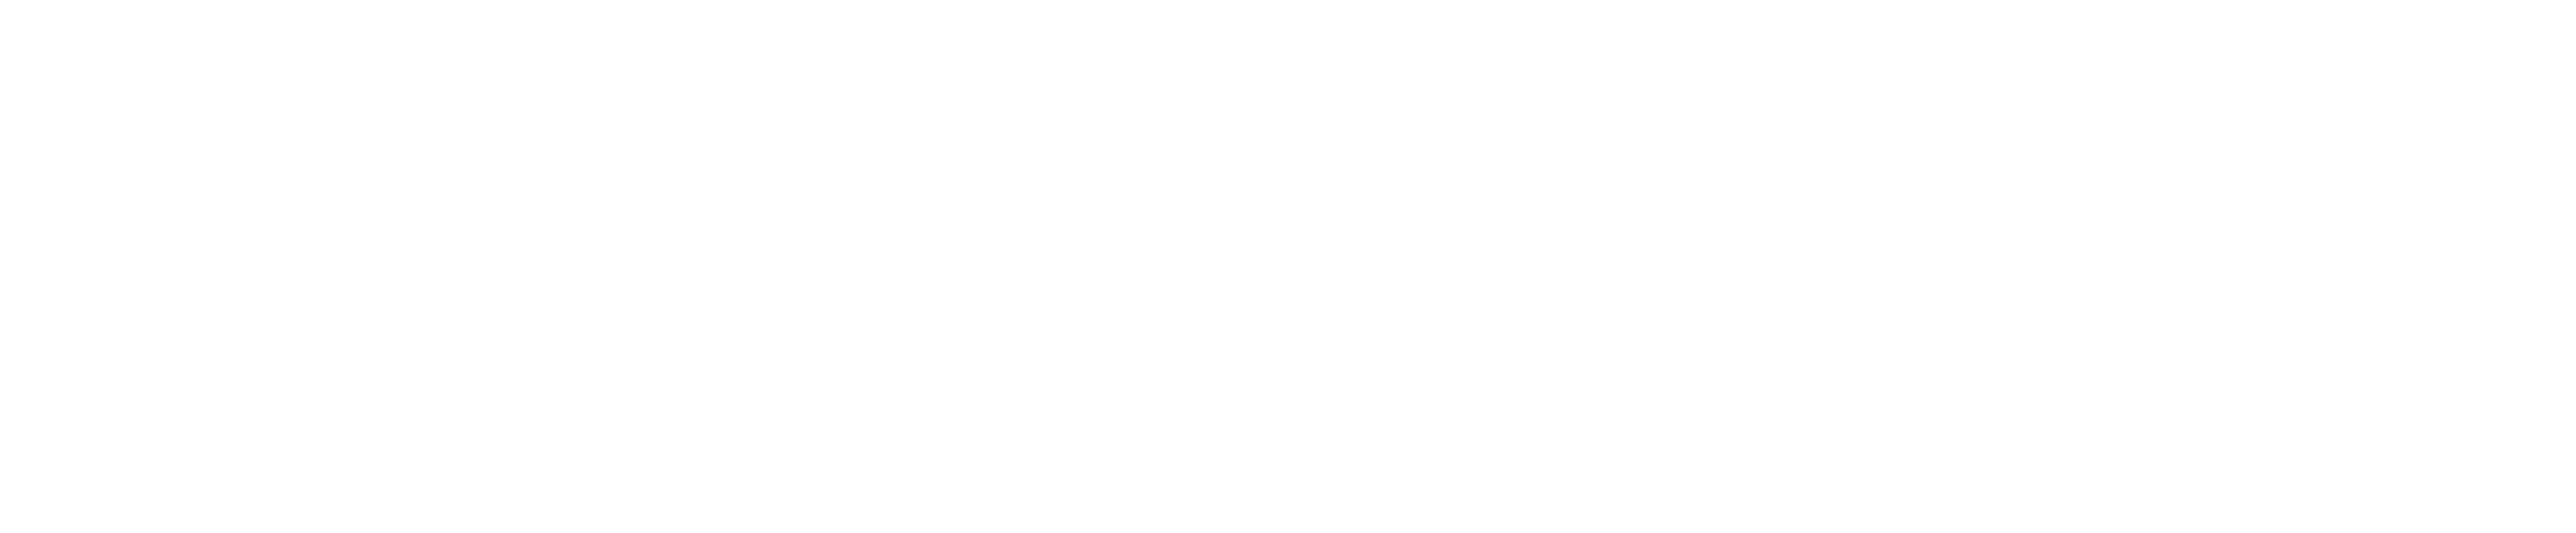 ActionCoach logo wit